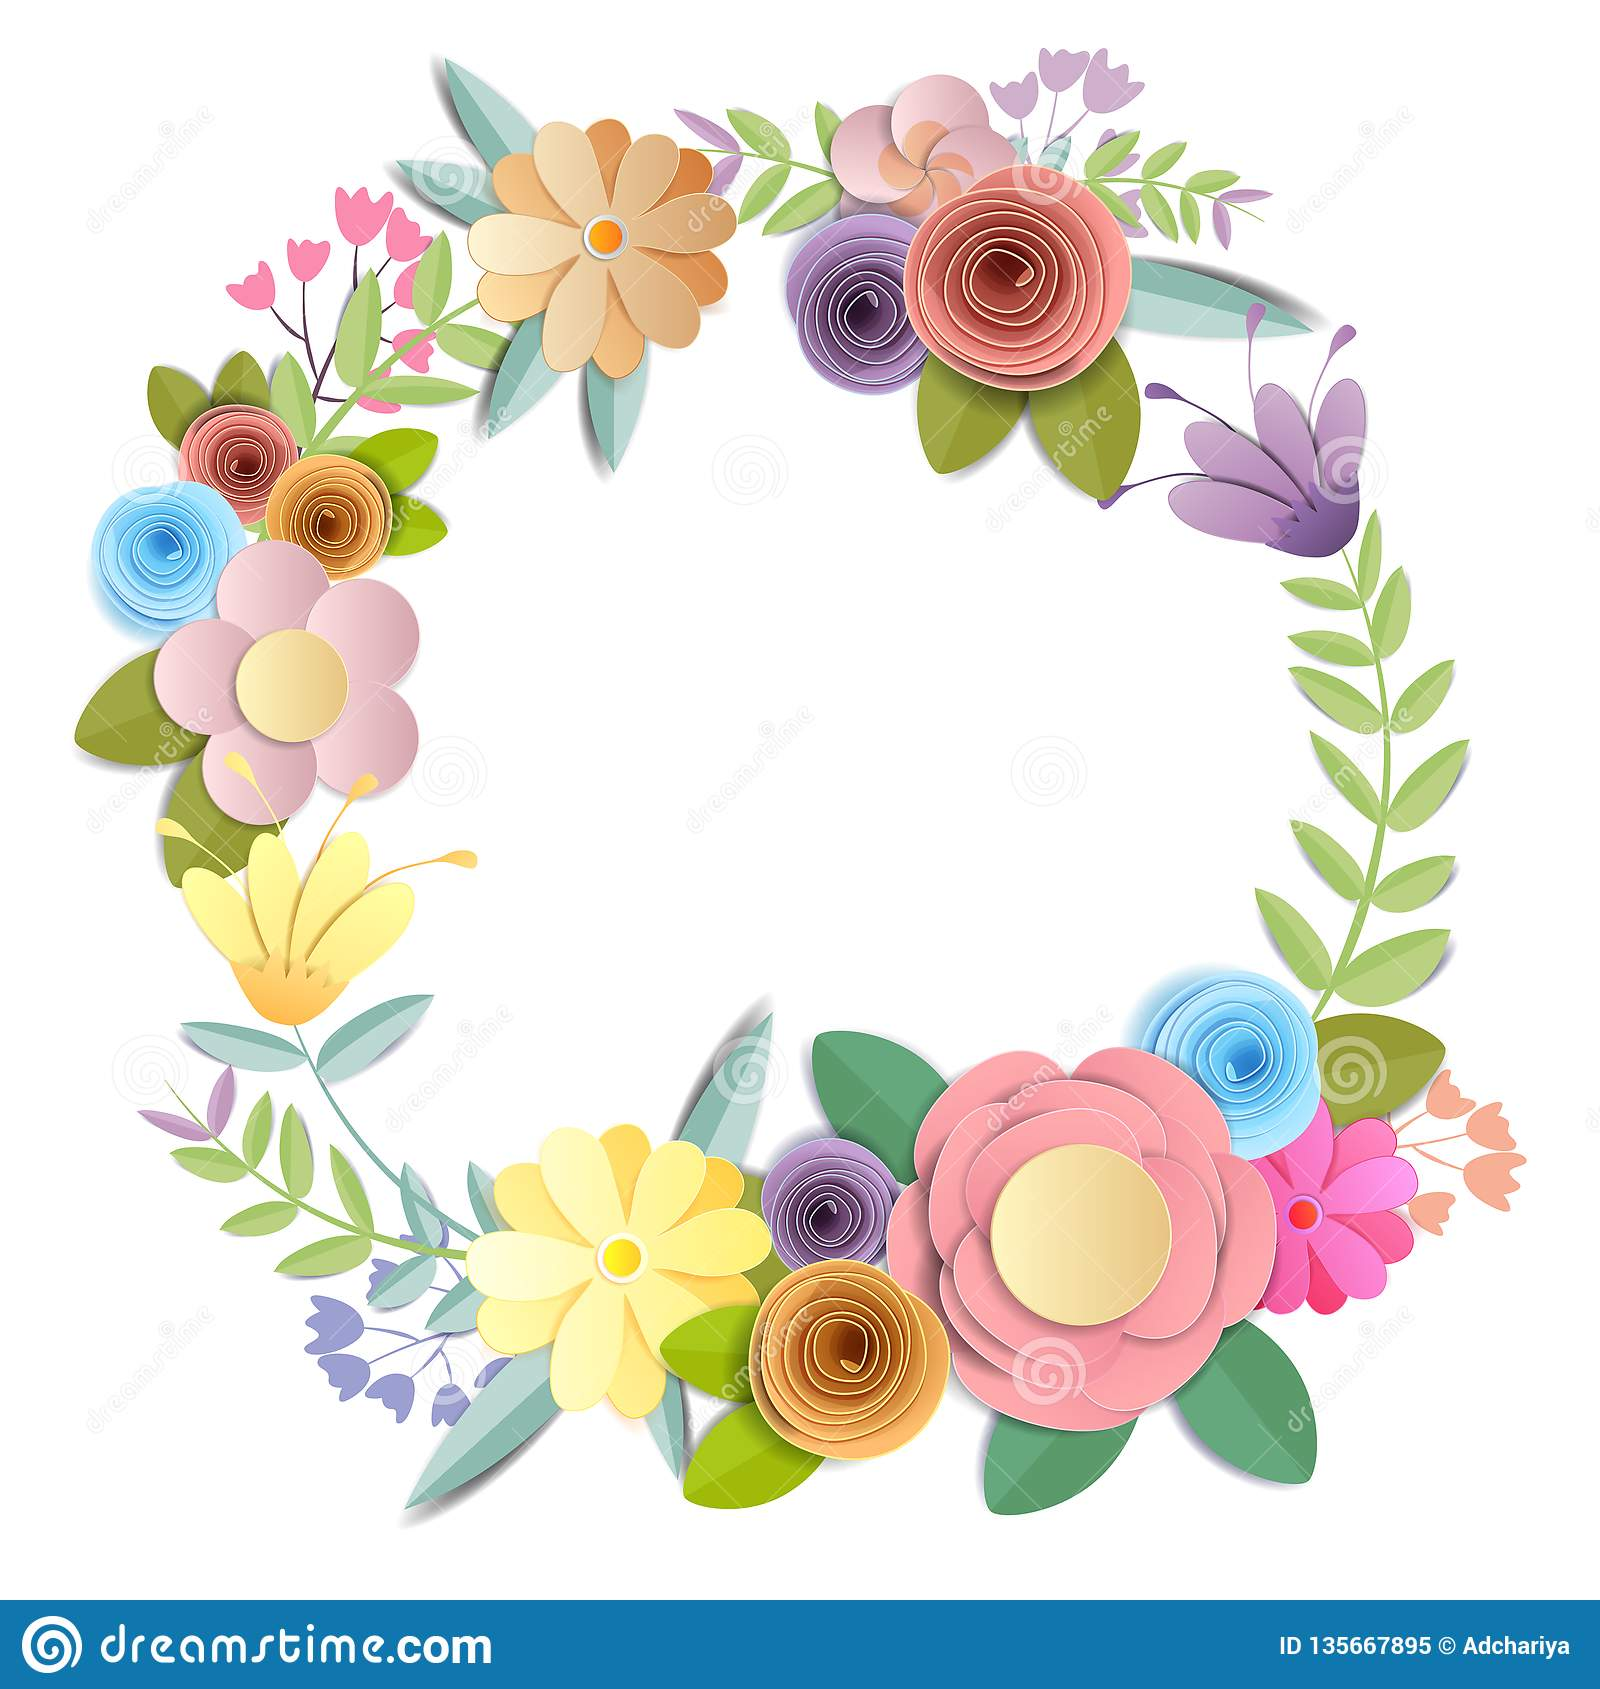 Vector And Illustration Design Craft Paper Flowers Spring Autumn Wedding And Valentine Festive Floral Bouquet Bright Fall Stock Vector Illustration Of Pattern Flora 135667895